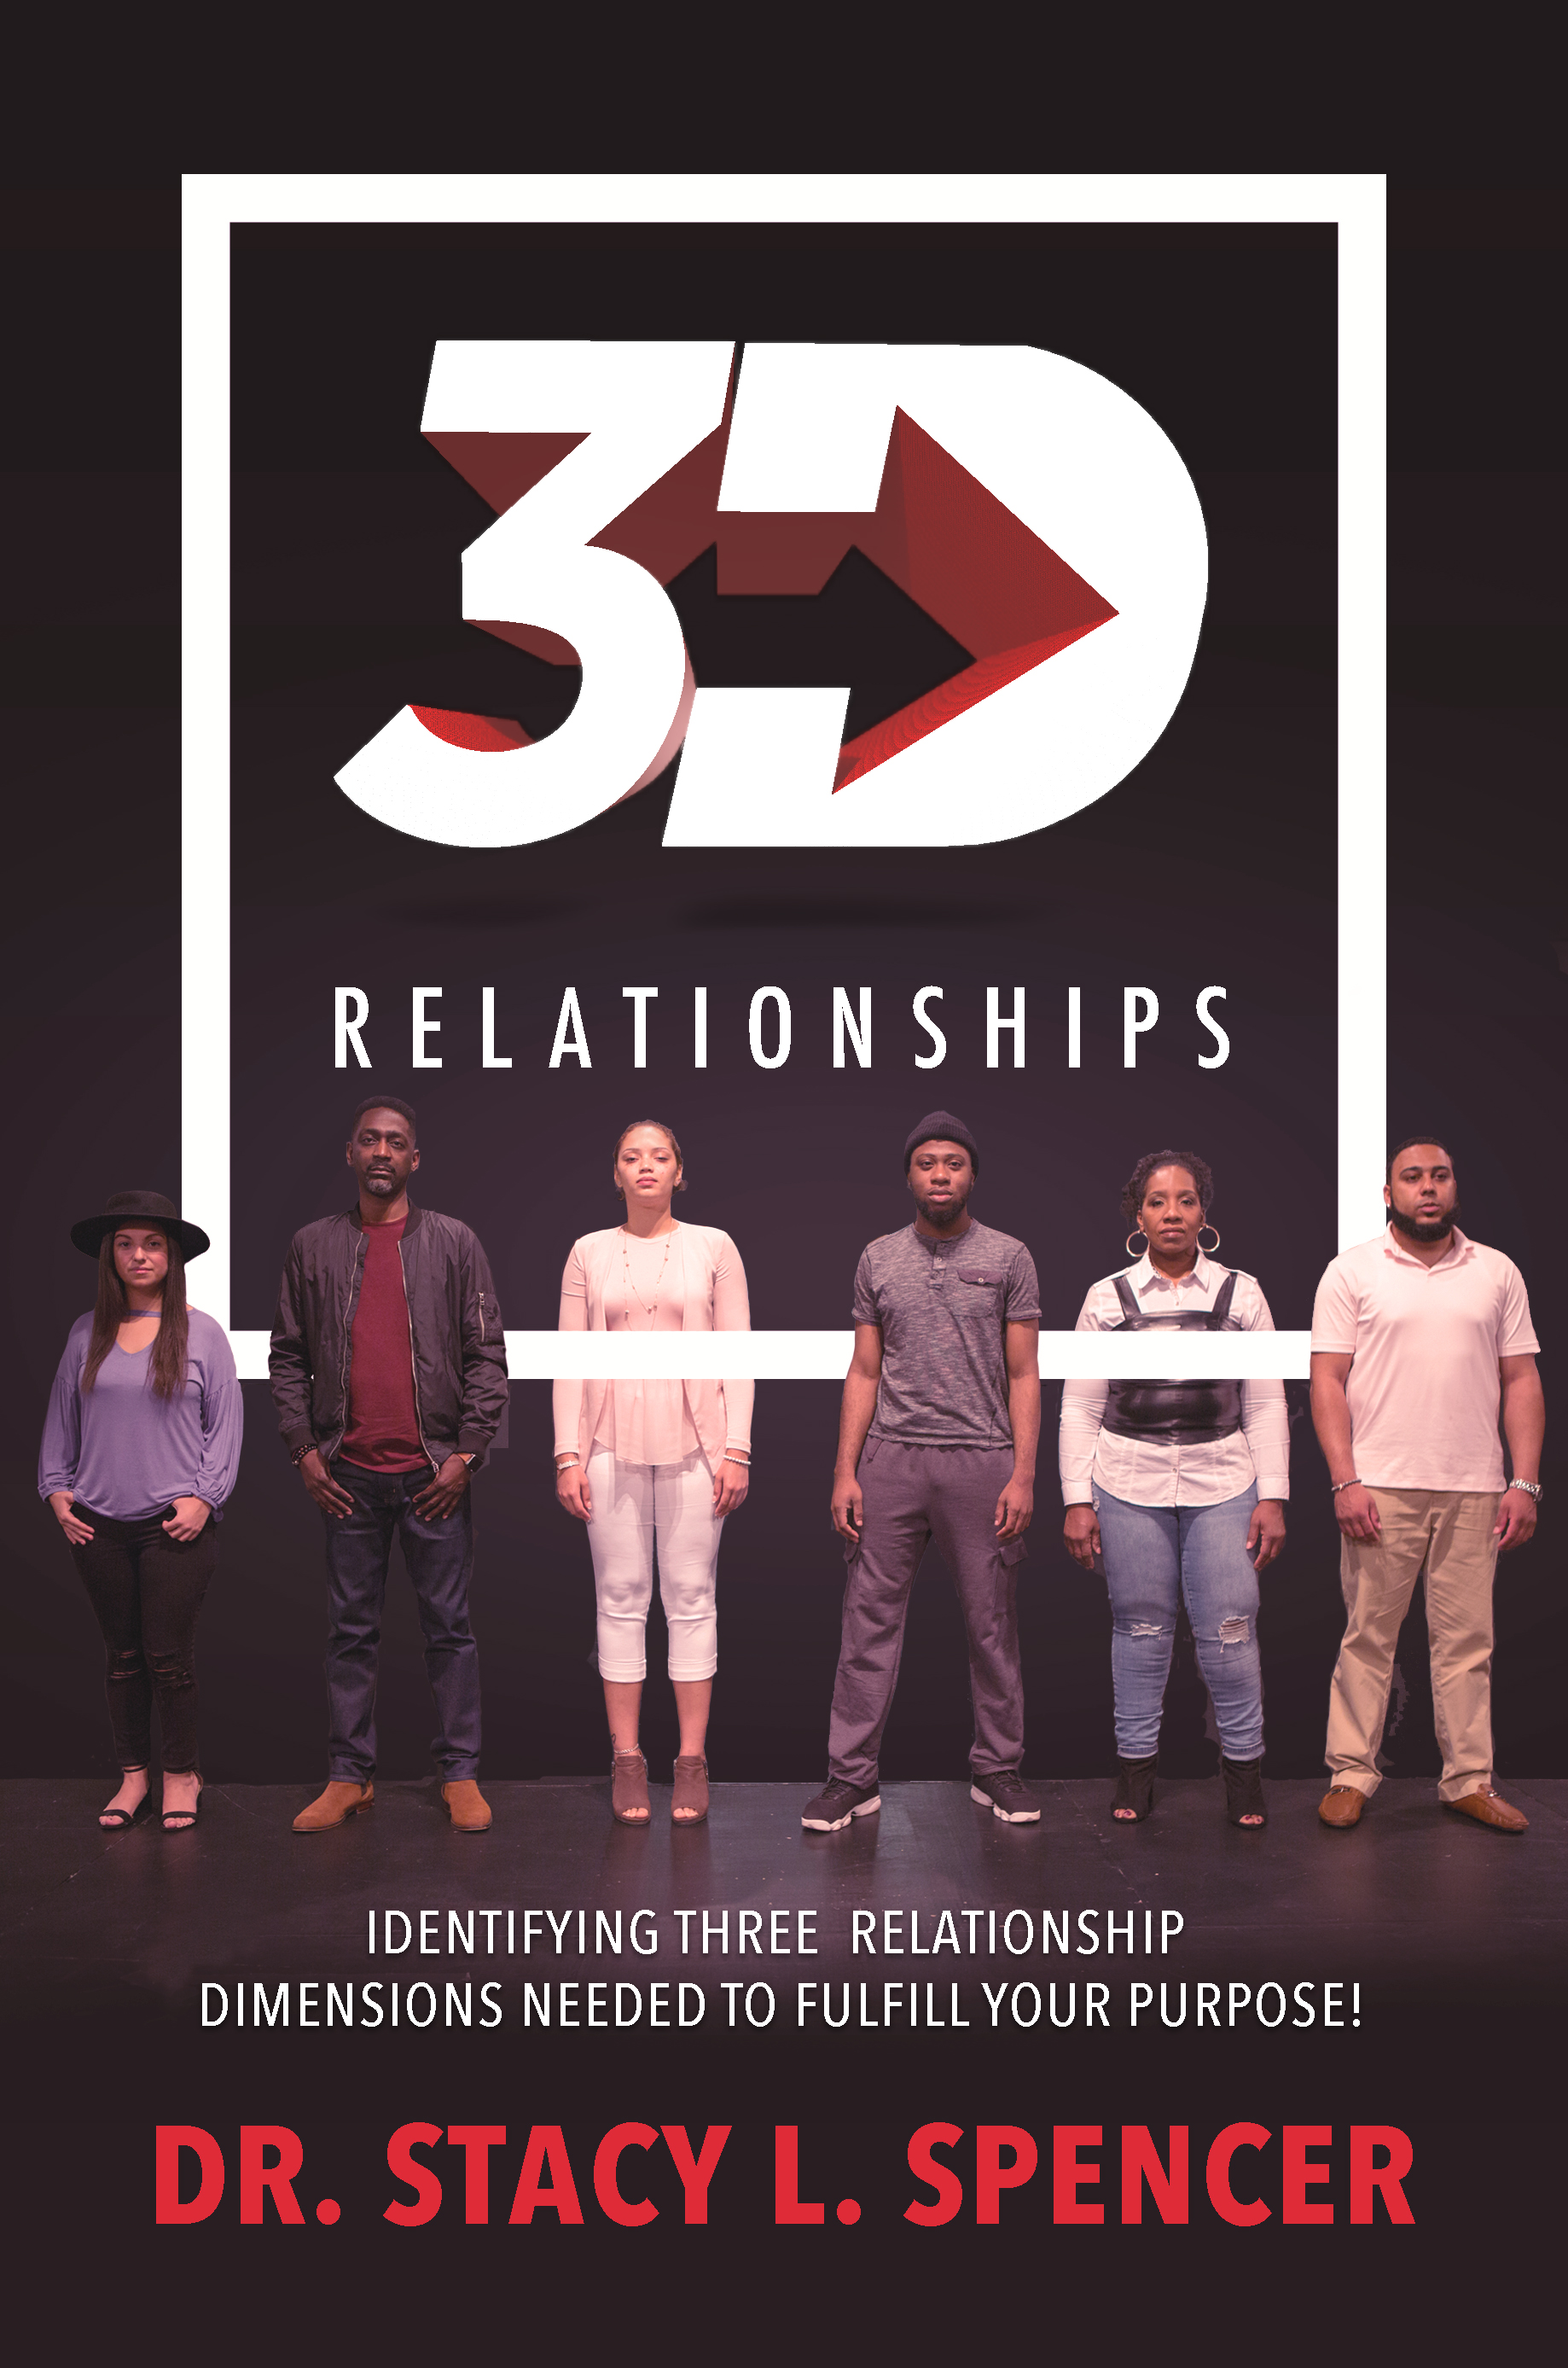 3D Relationships series